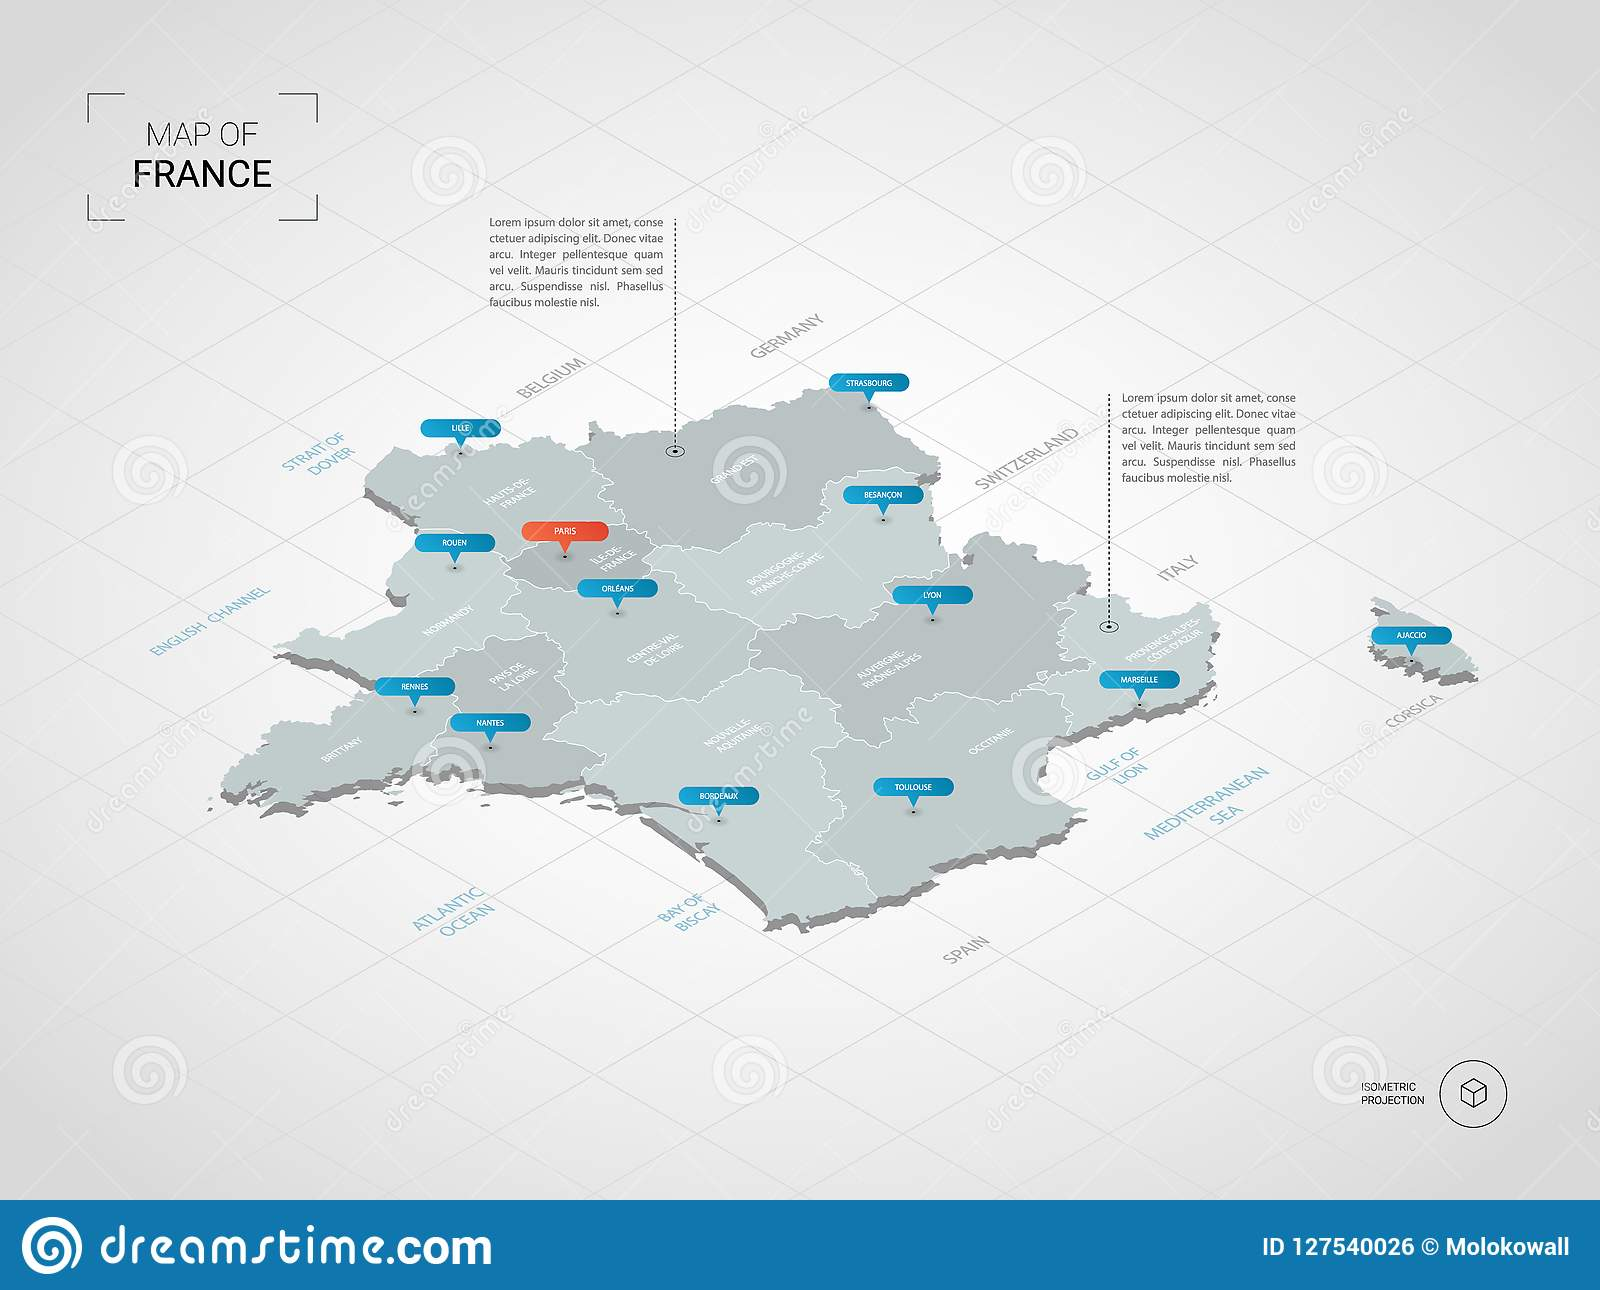 Map Of Germany With Cities In English.Isometric France Map With City Names And Administrative Division